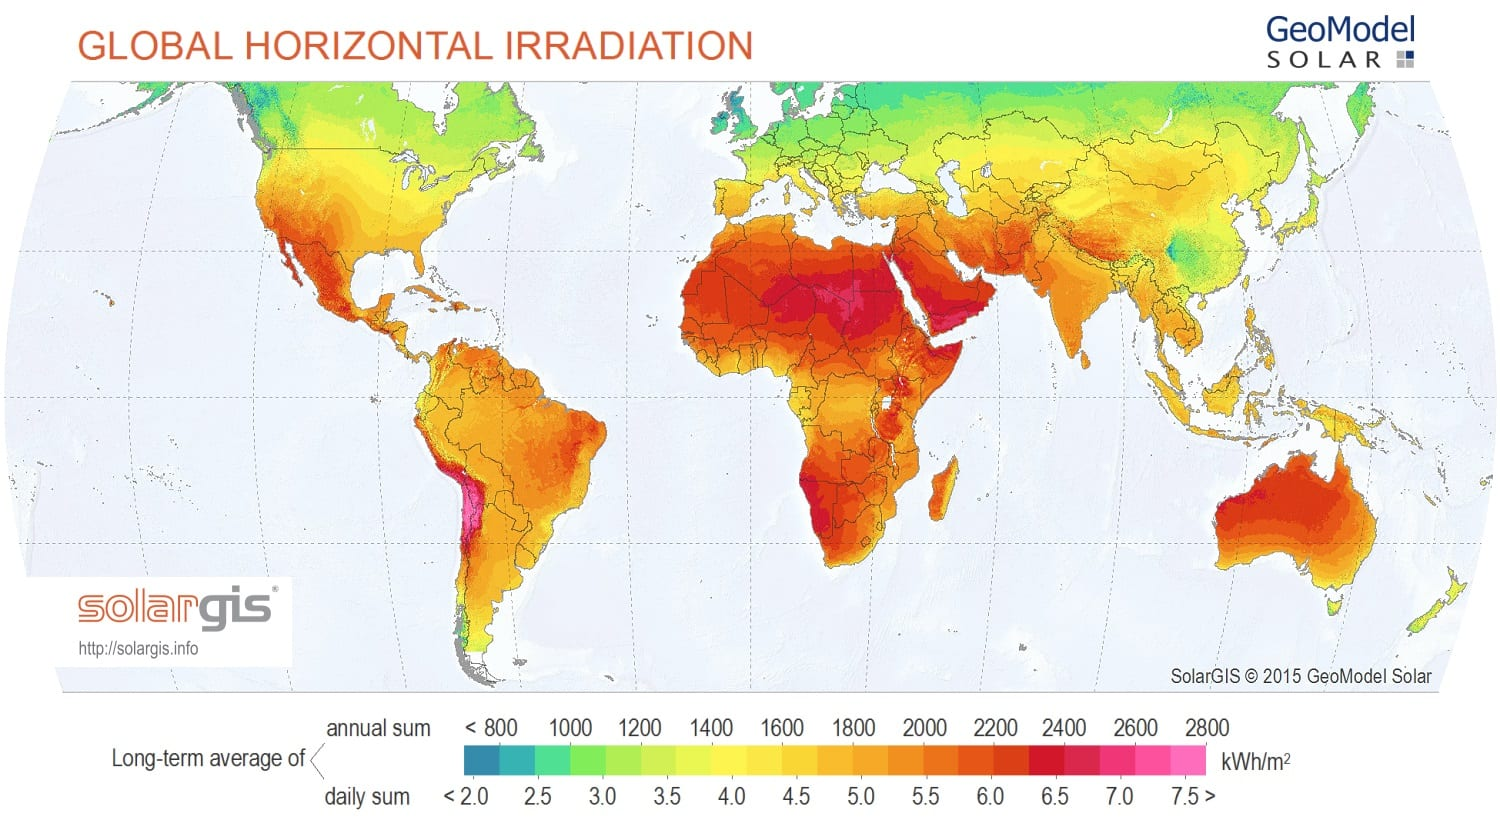 How a global solar alliance can help developing countries ucl solargis solar map world map en most developing countries gumiabroncs Choice Image